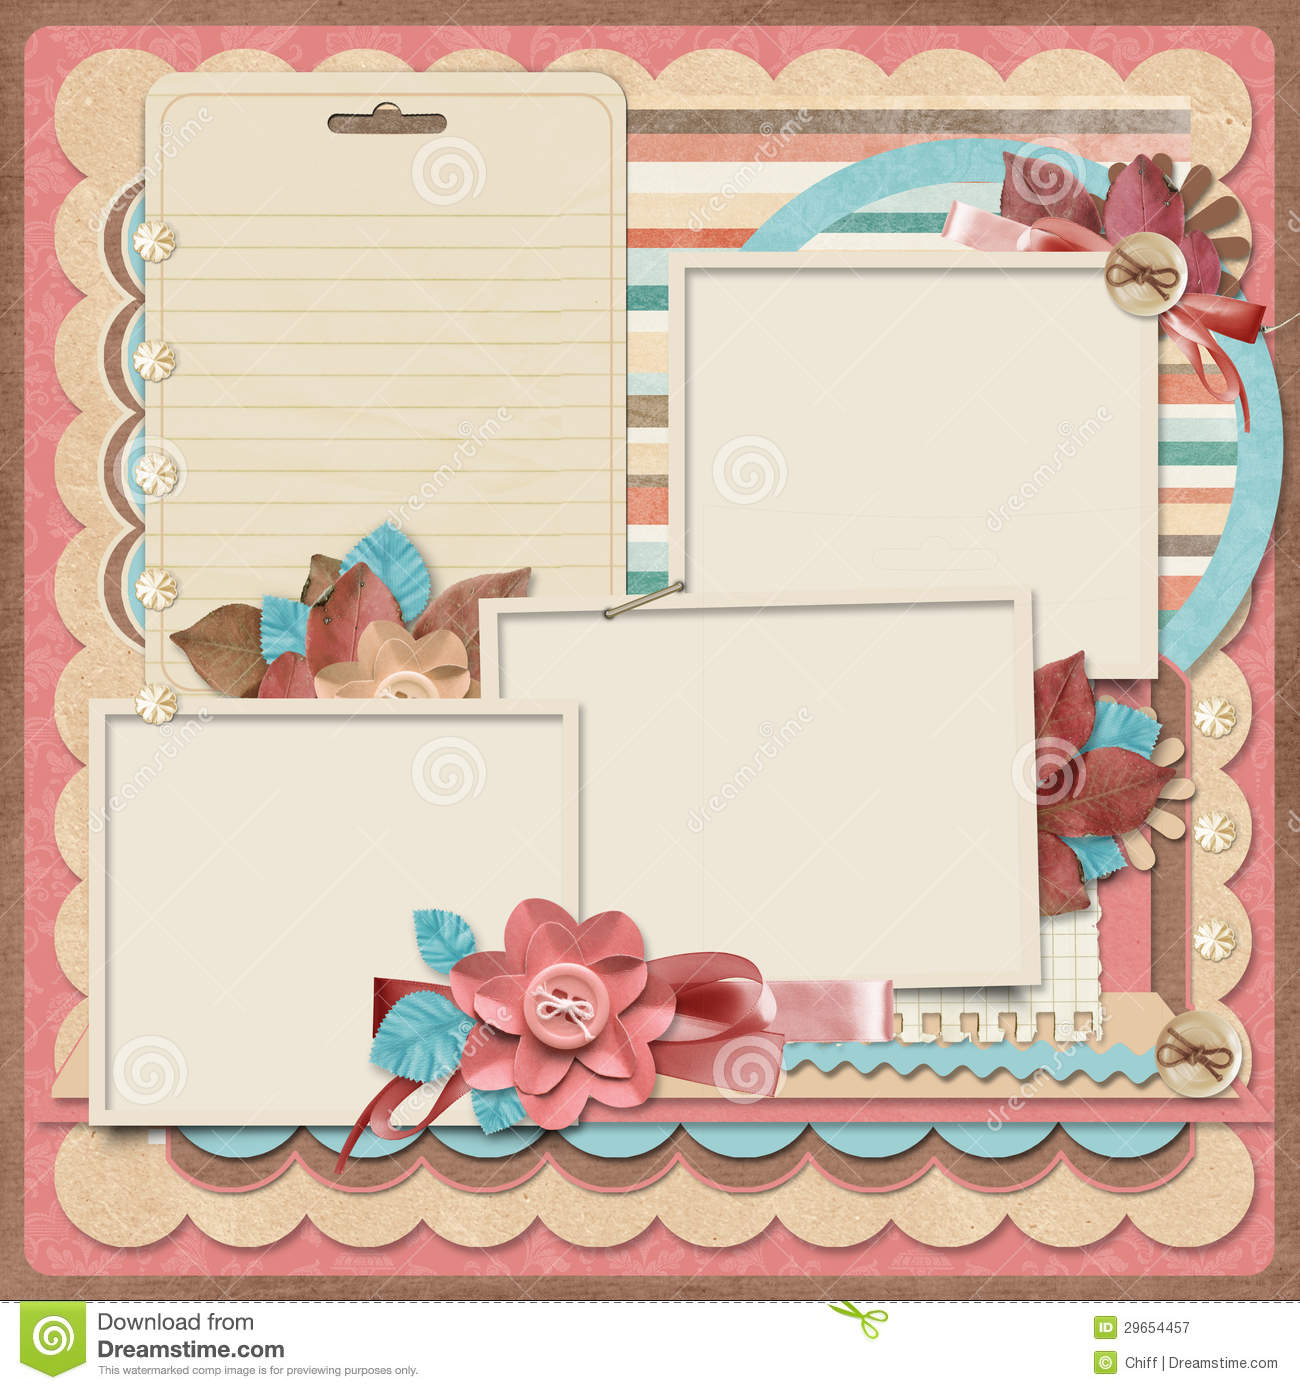 Retro Family Album.365 Project. Scrapbooking Templates. Journal, Holidays.  Free Album Templates